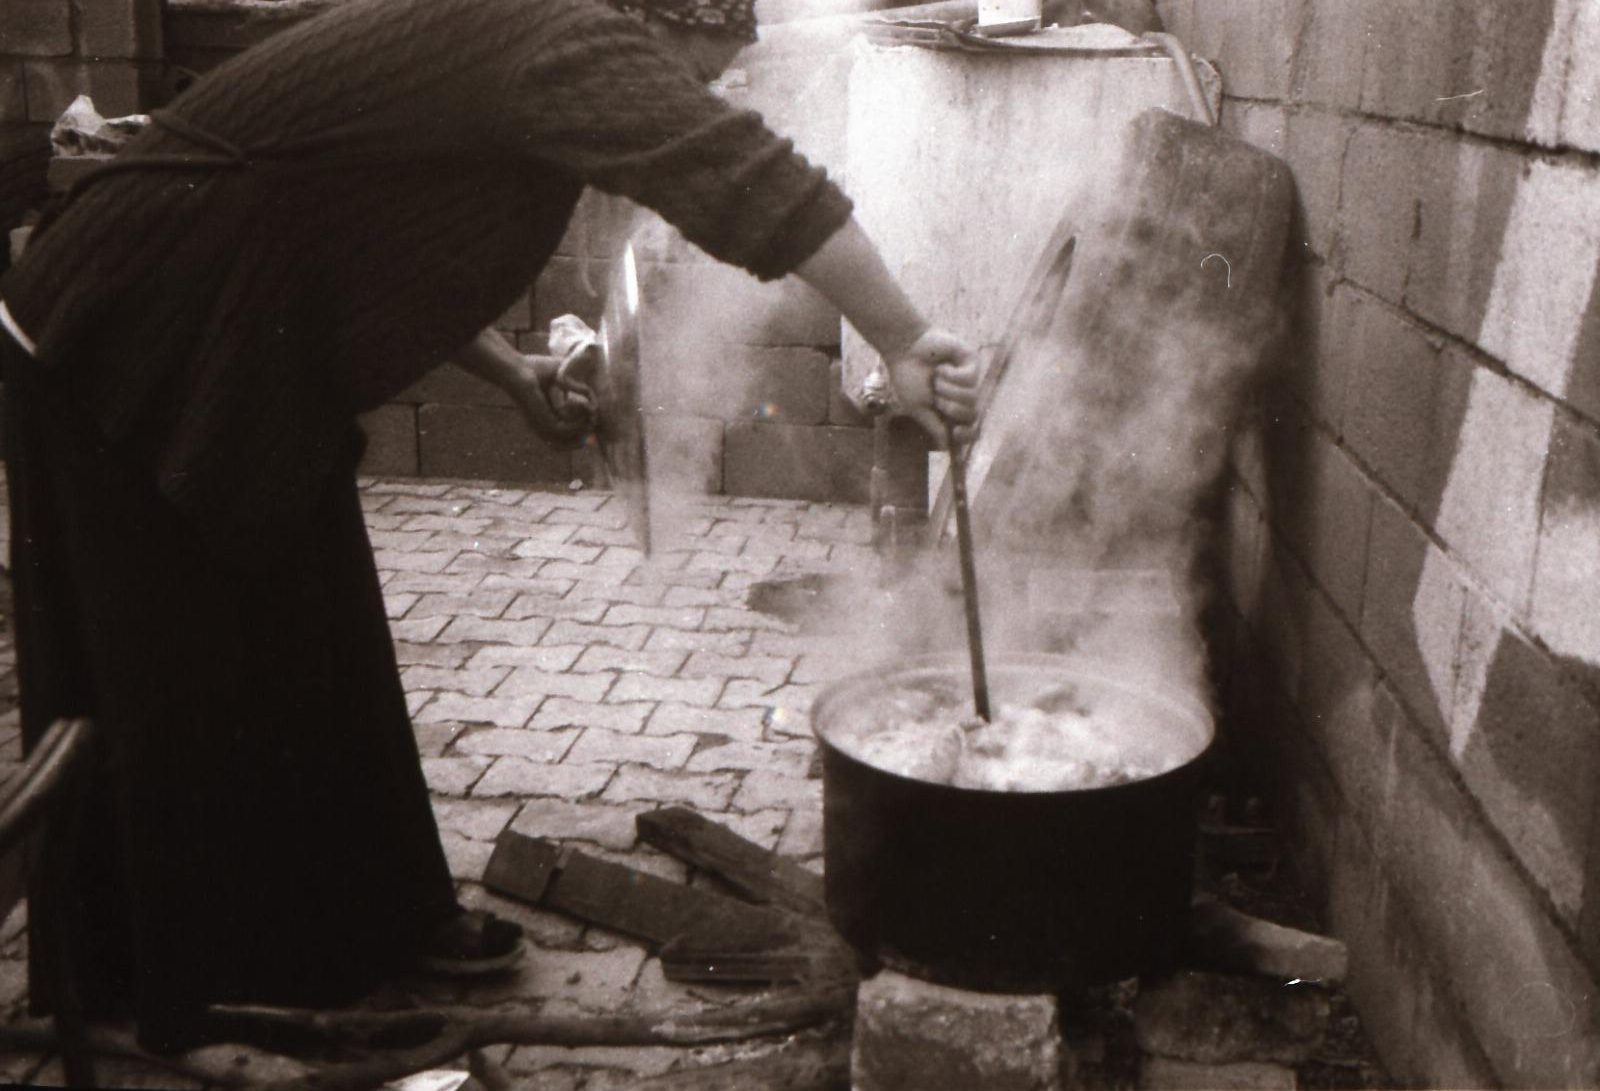 Photo by Serhad he is years old from Mardin Turkey ( Photos of his mother while cooking ilford Pan 400